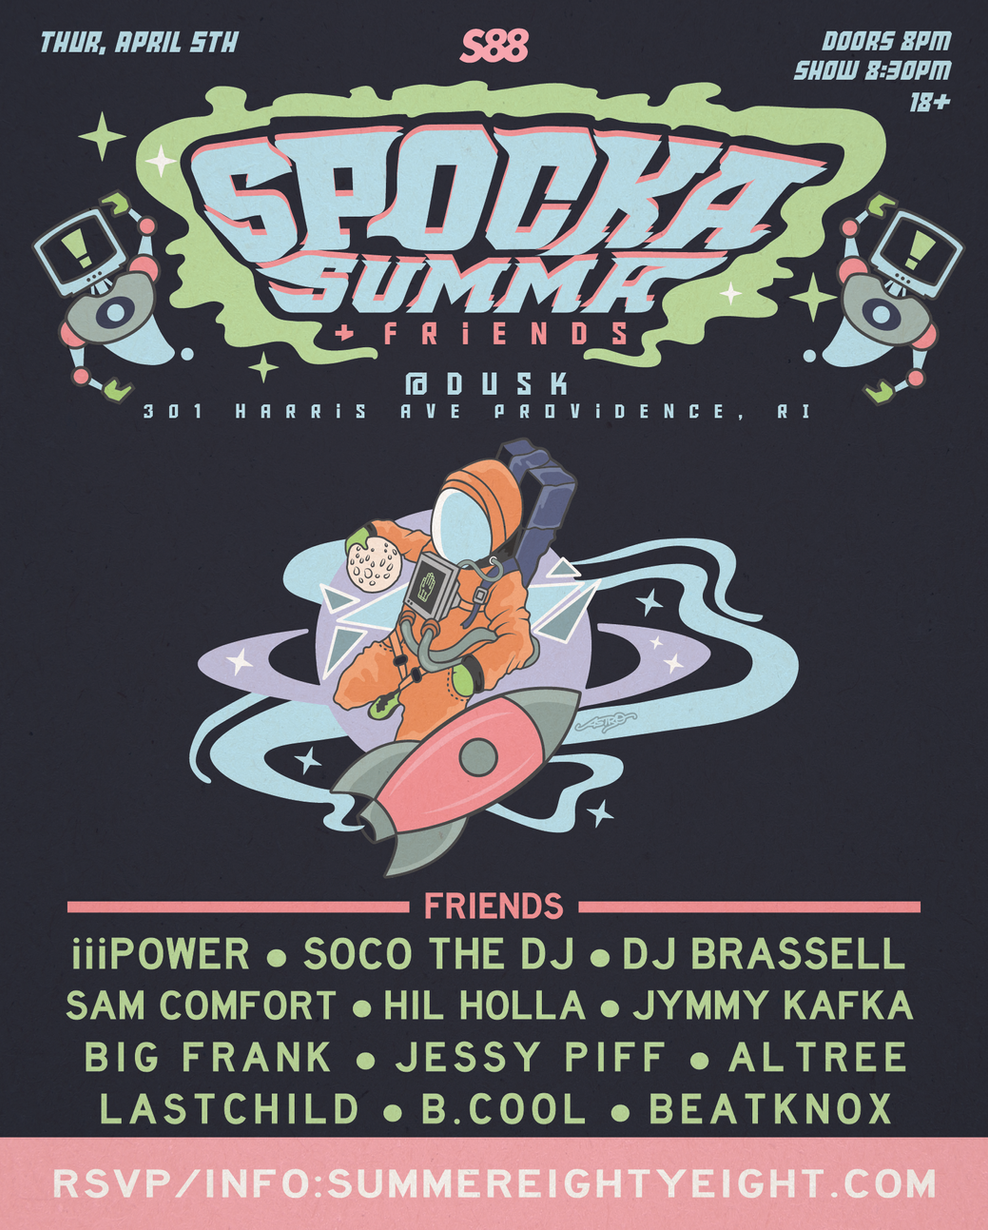 Just announced: Spocka Summa & Friends